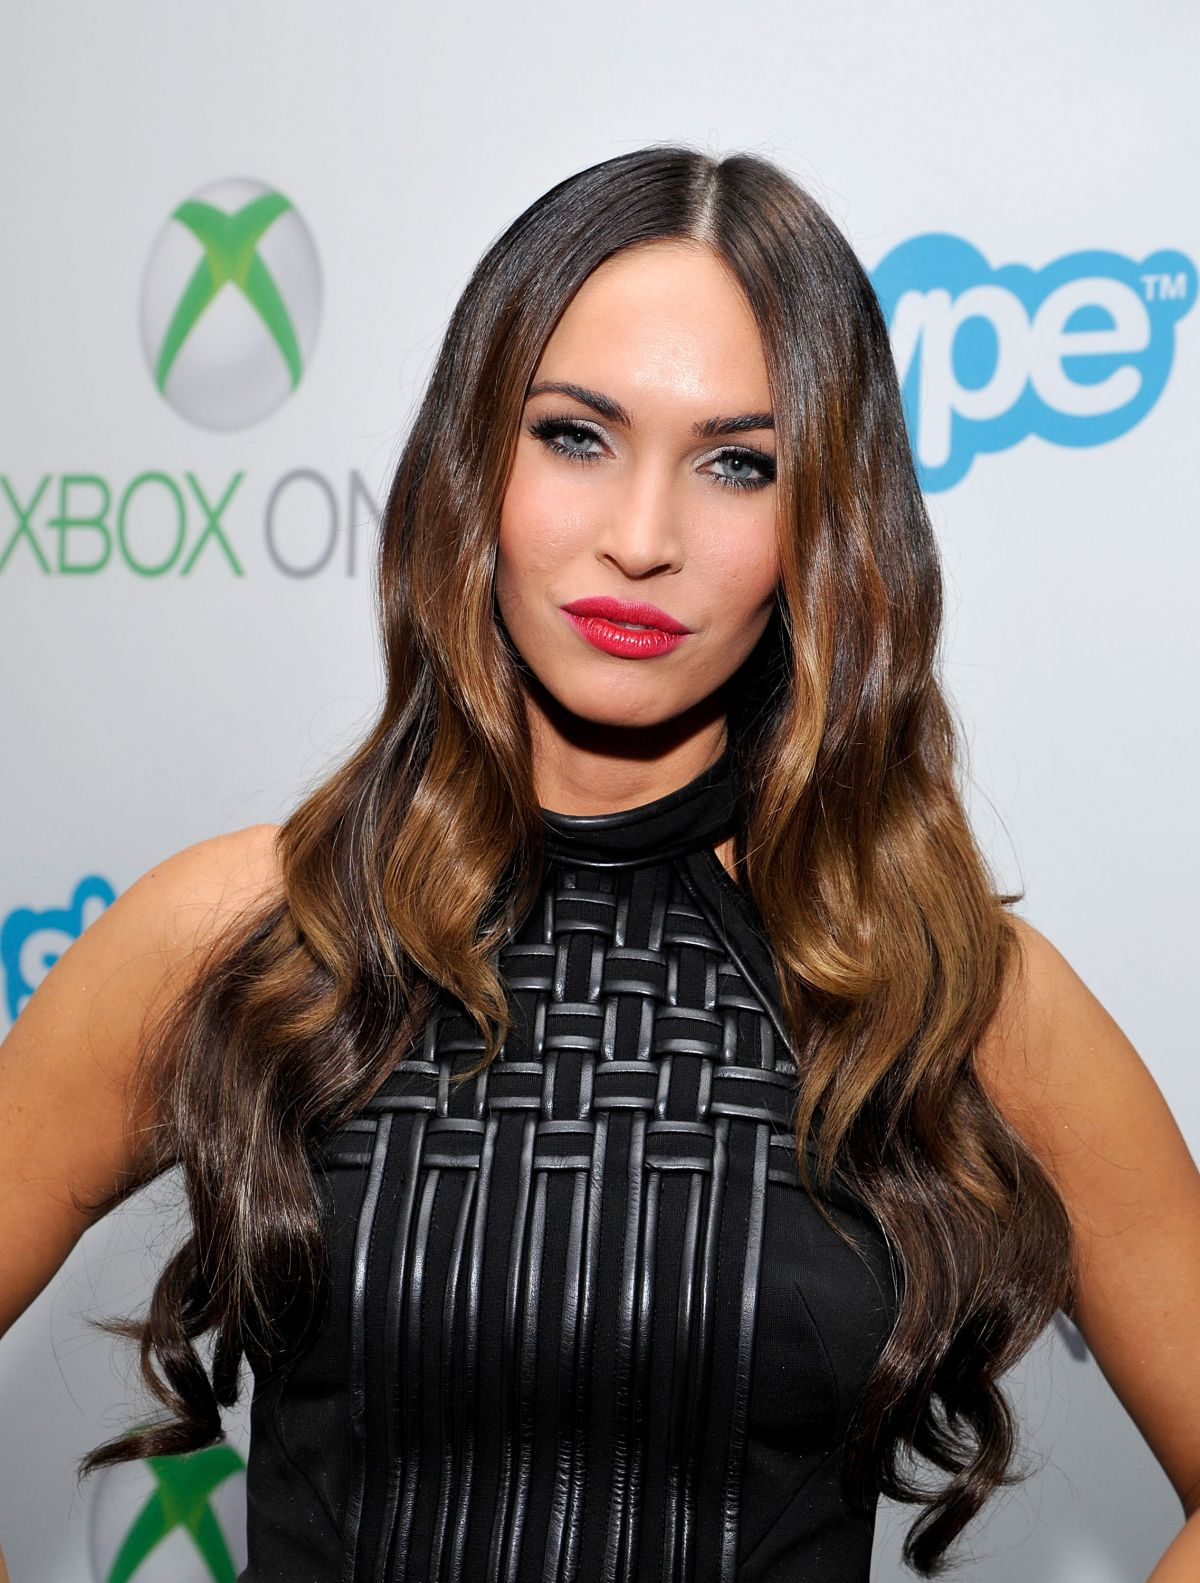 MEGAN FOX at Microsoft VIP Lounge at The Hard Rock Cafe in San Diego